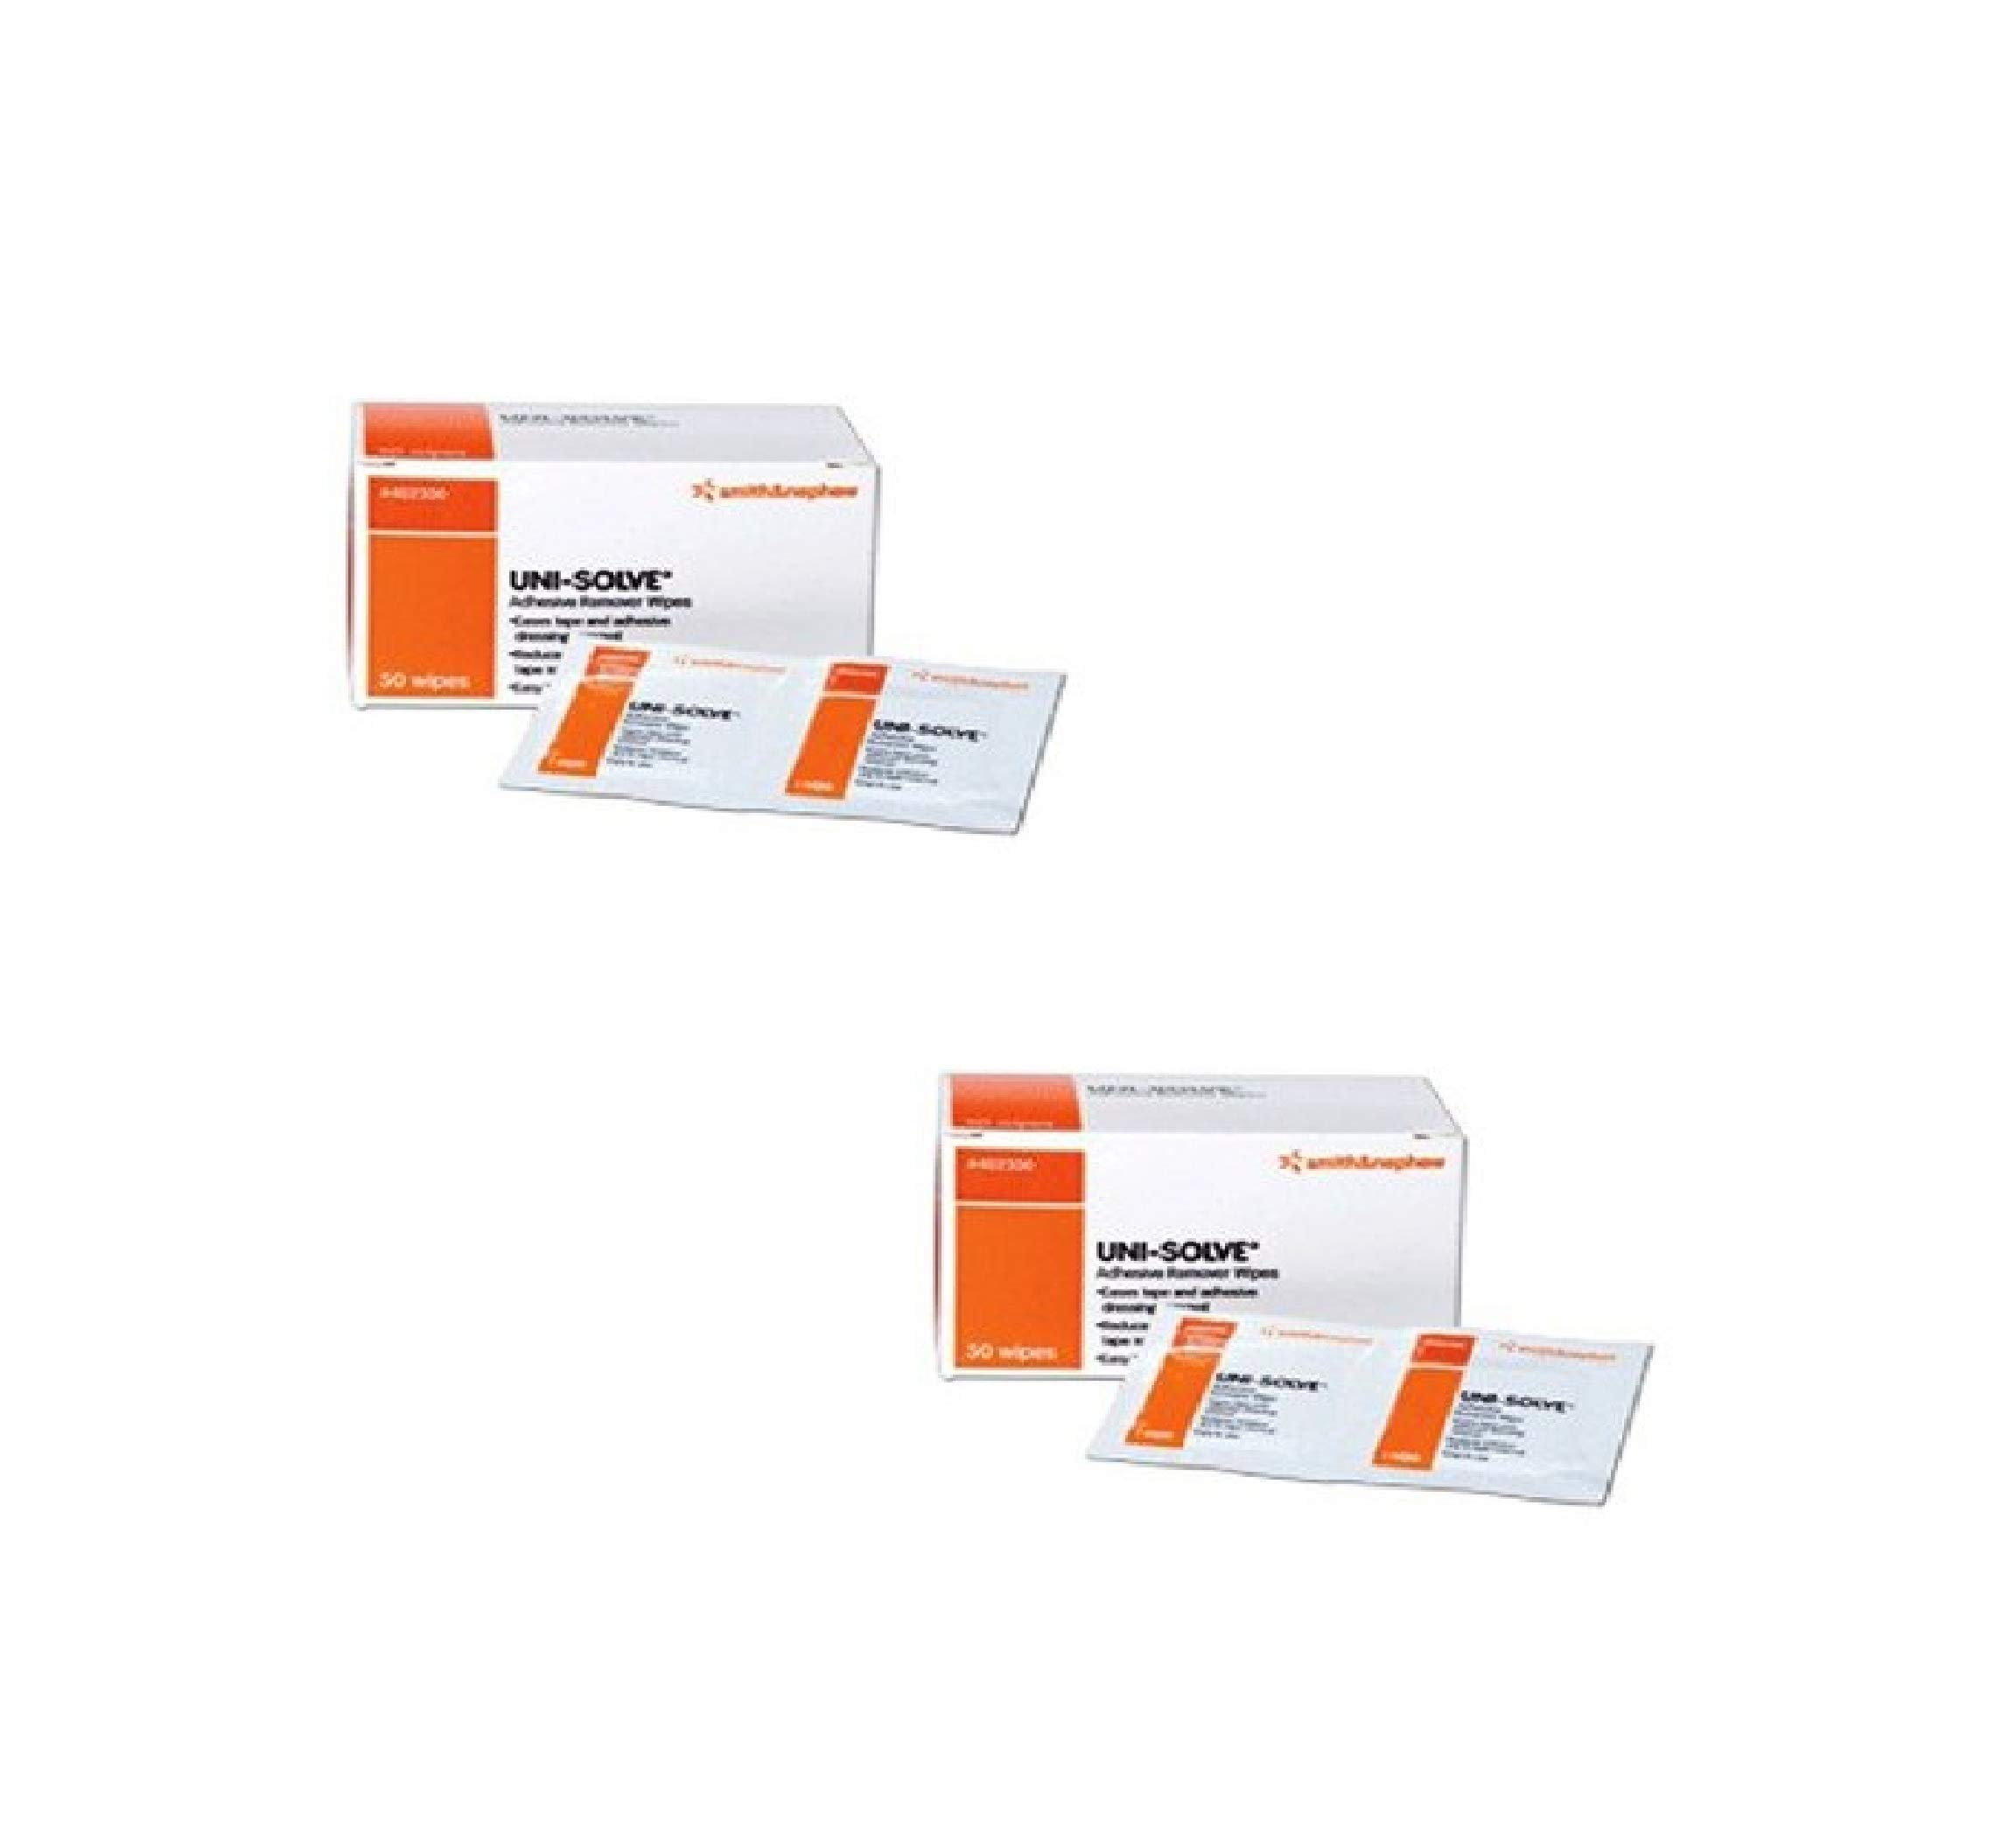 Smith & Nephew Uni-Solve Adhesive Remover - Wipes Box of 50 (2 Pack)